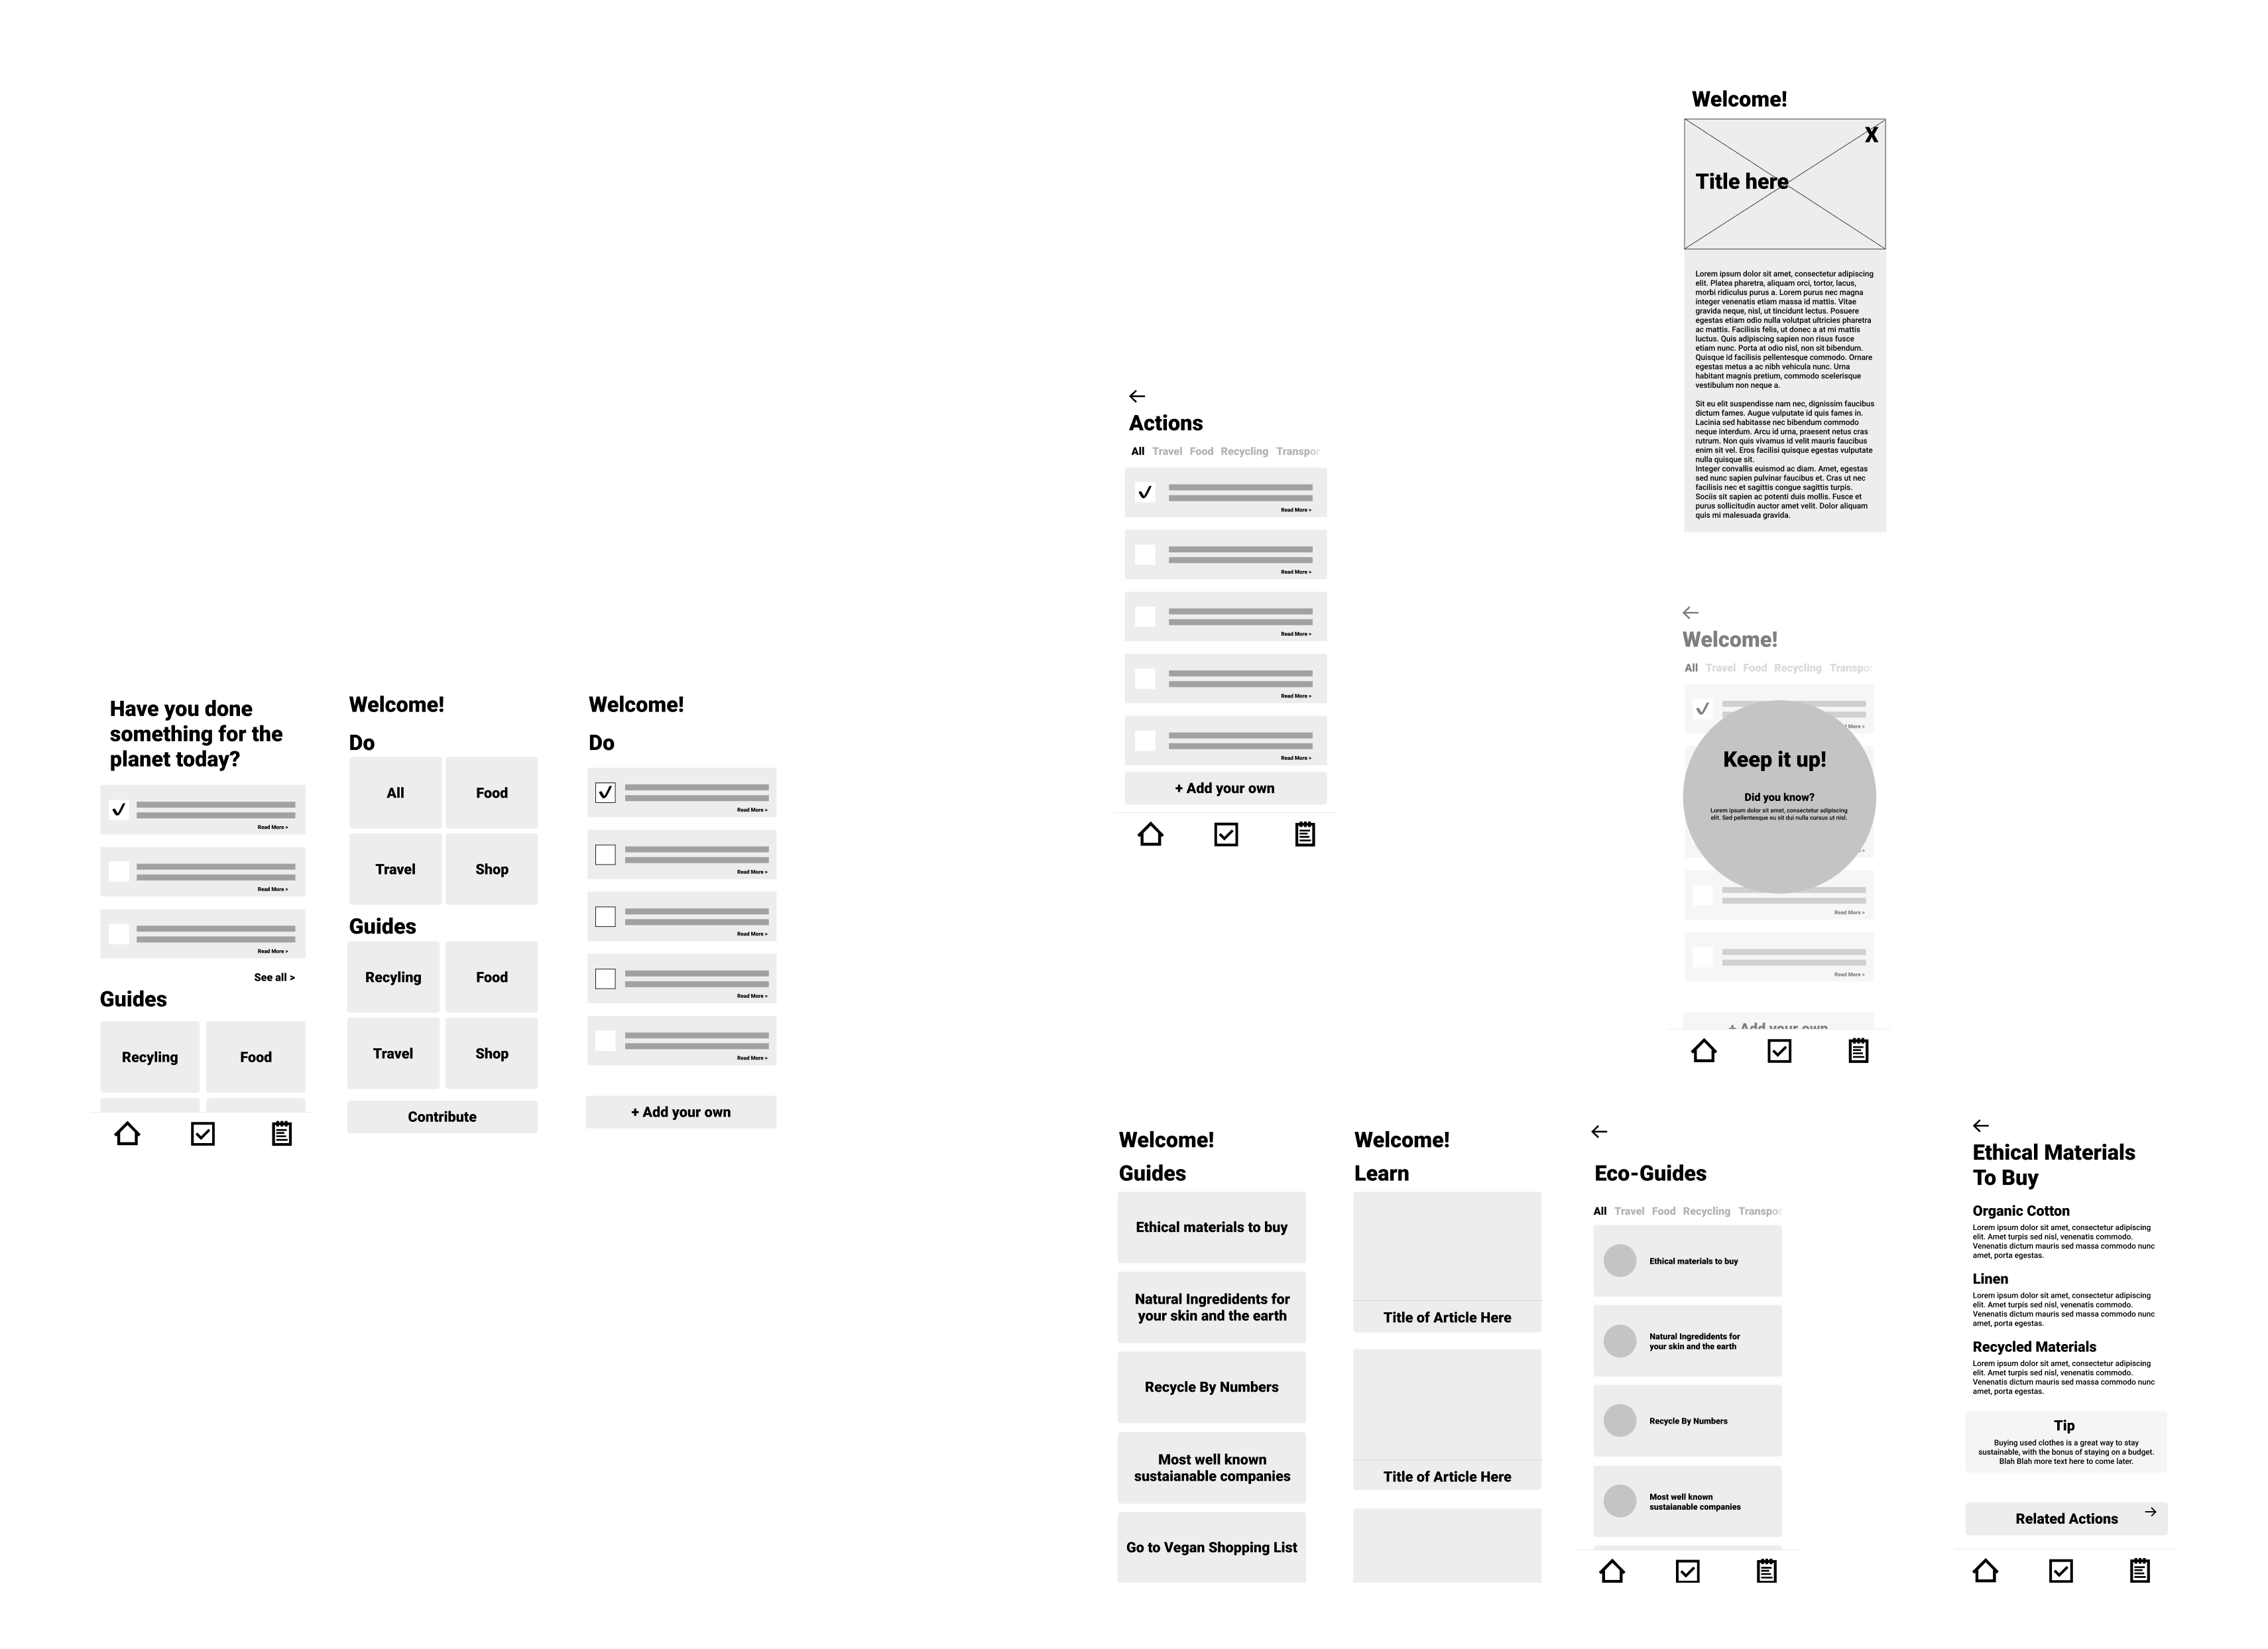 User Flow and Wireframe for the App